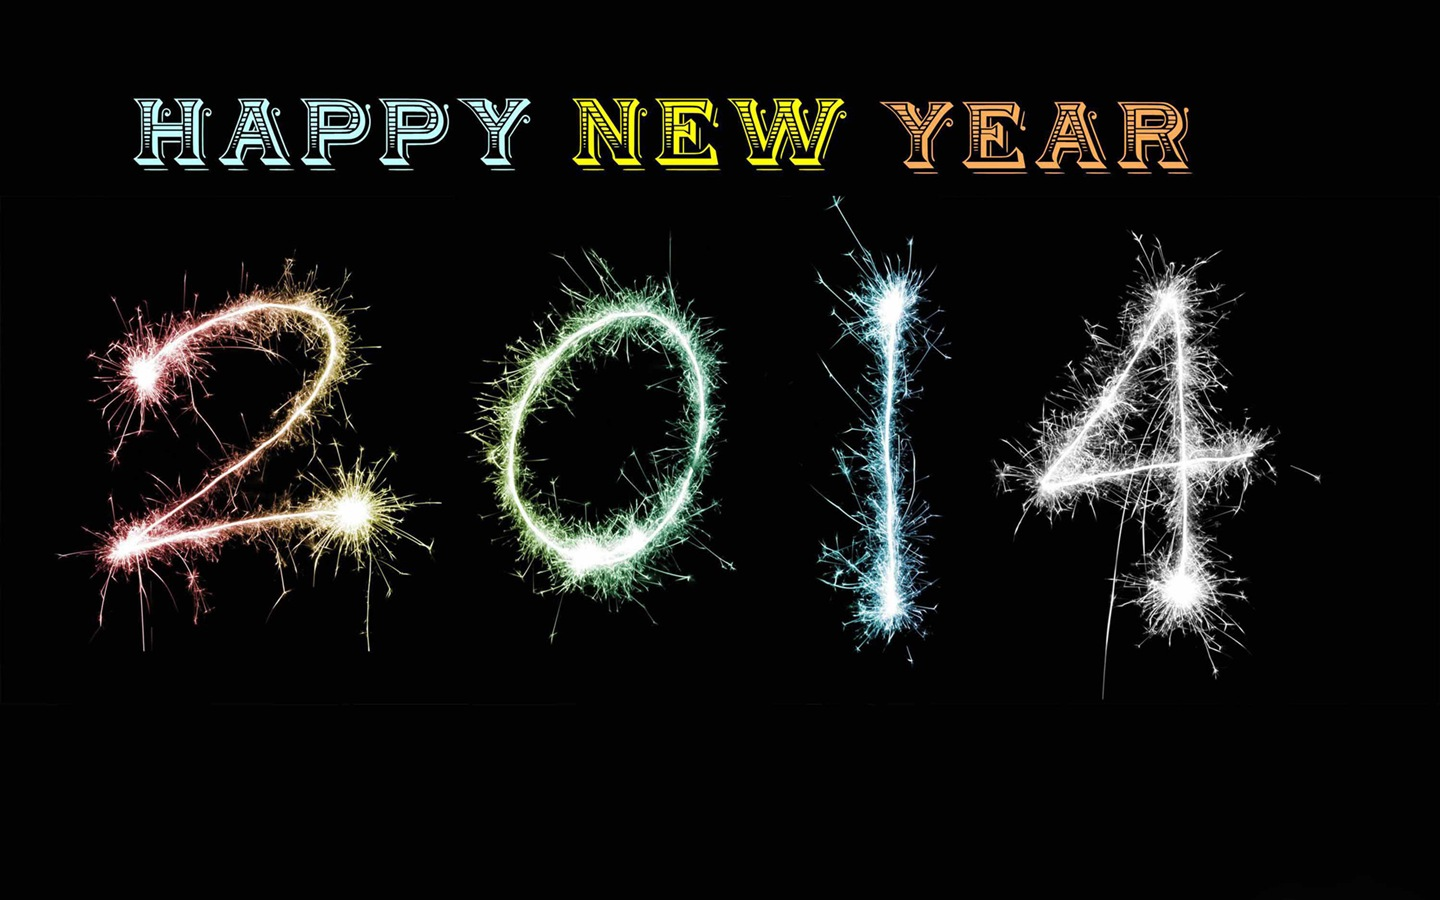 2014 New Year Theme HD Wallpapers (2) #12 - 1440x900